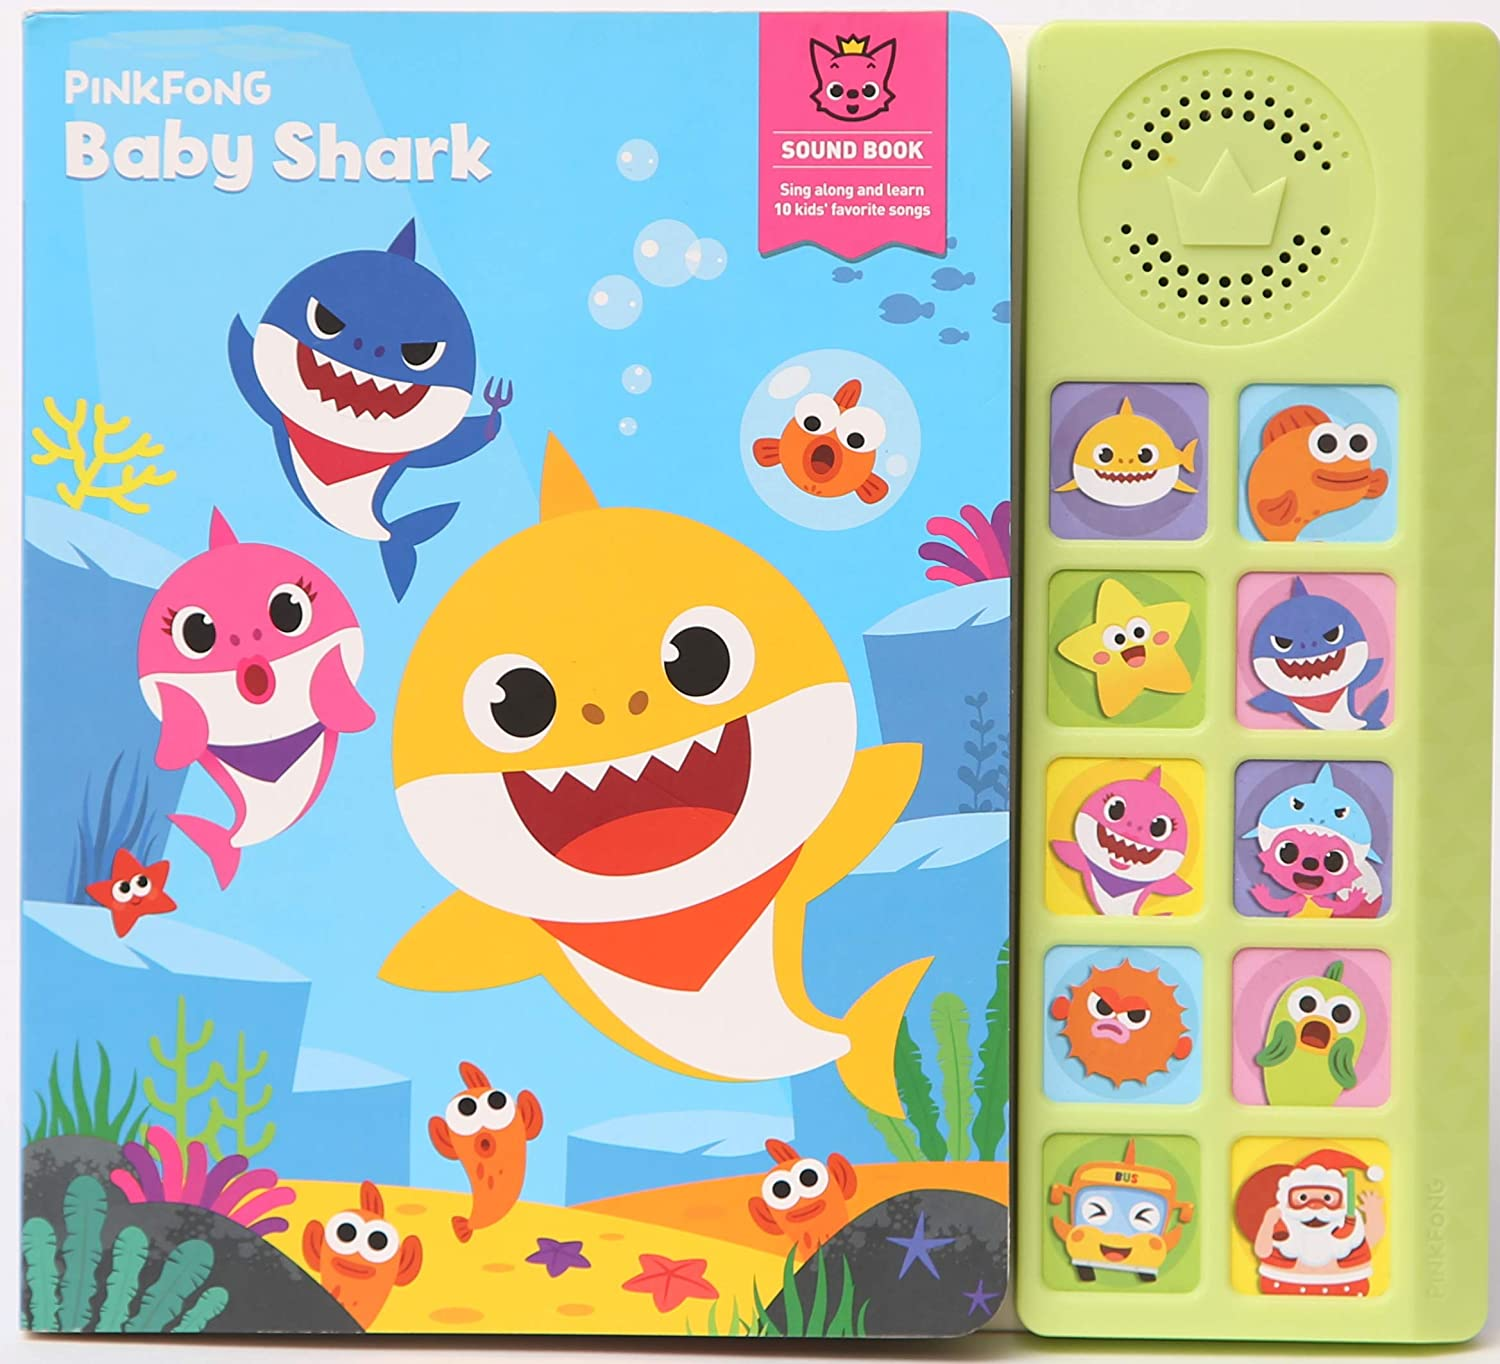 Pinkfong Baby Shark Sing-Alongs Sound Book (Old)